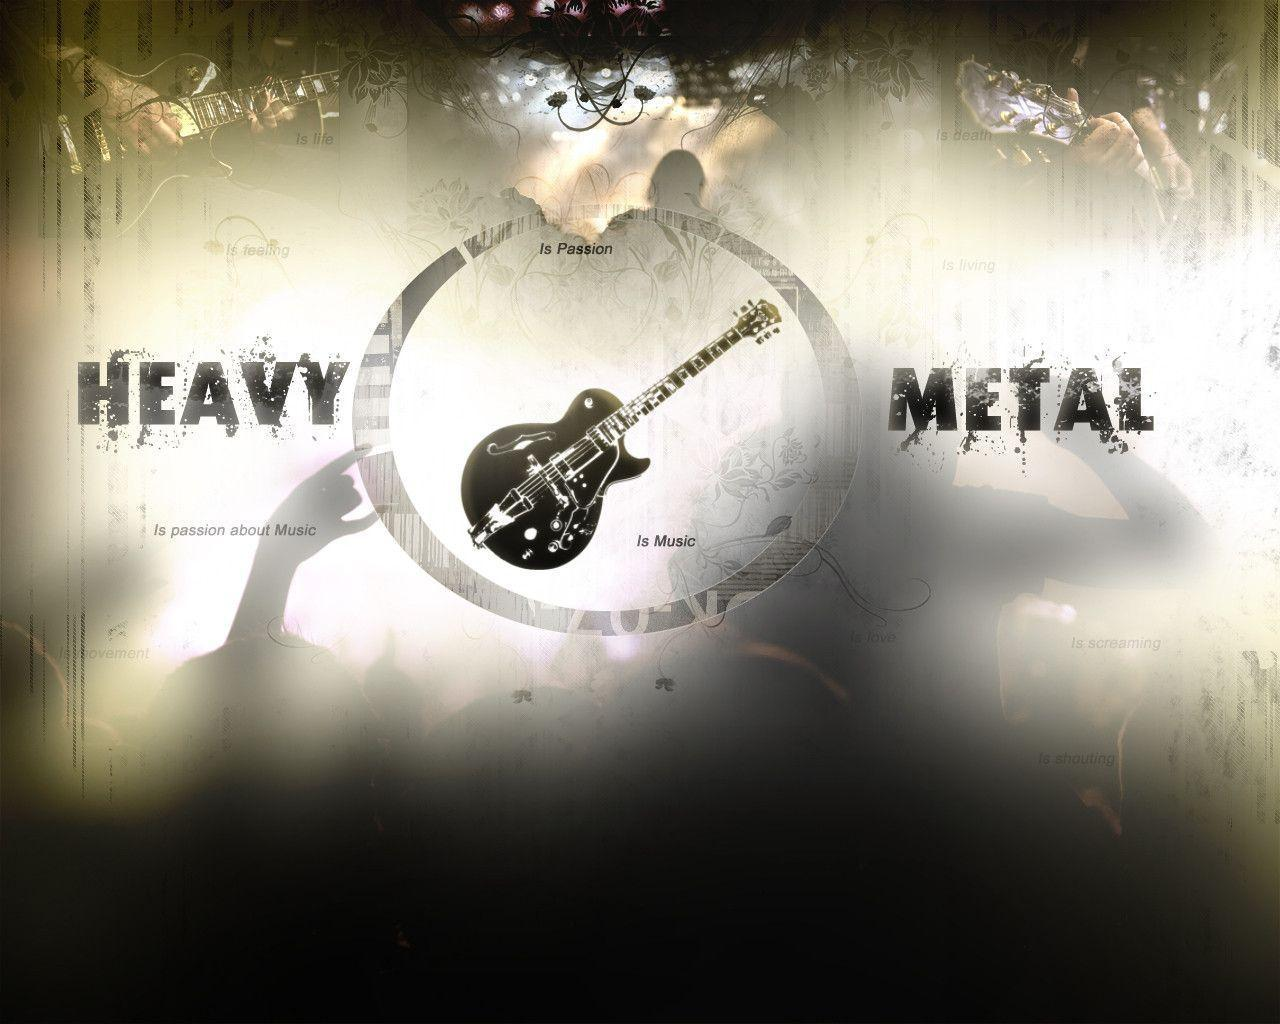 Heavy Metal Wallpaper - Metal Wallpaper (21000467) - Fanpop